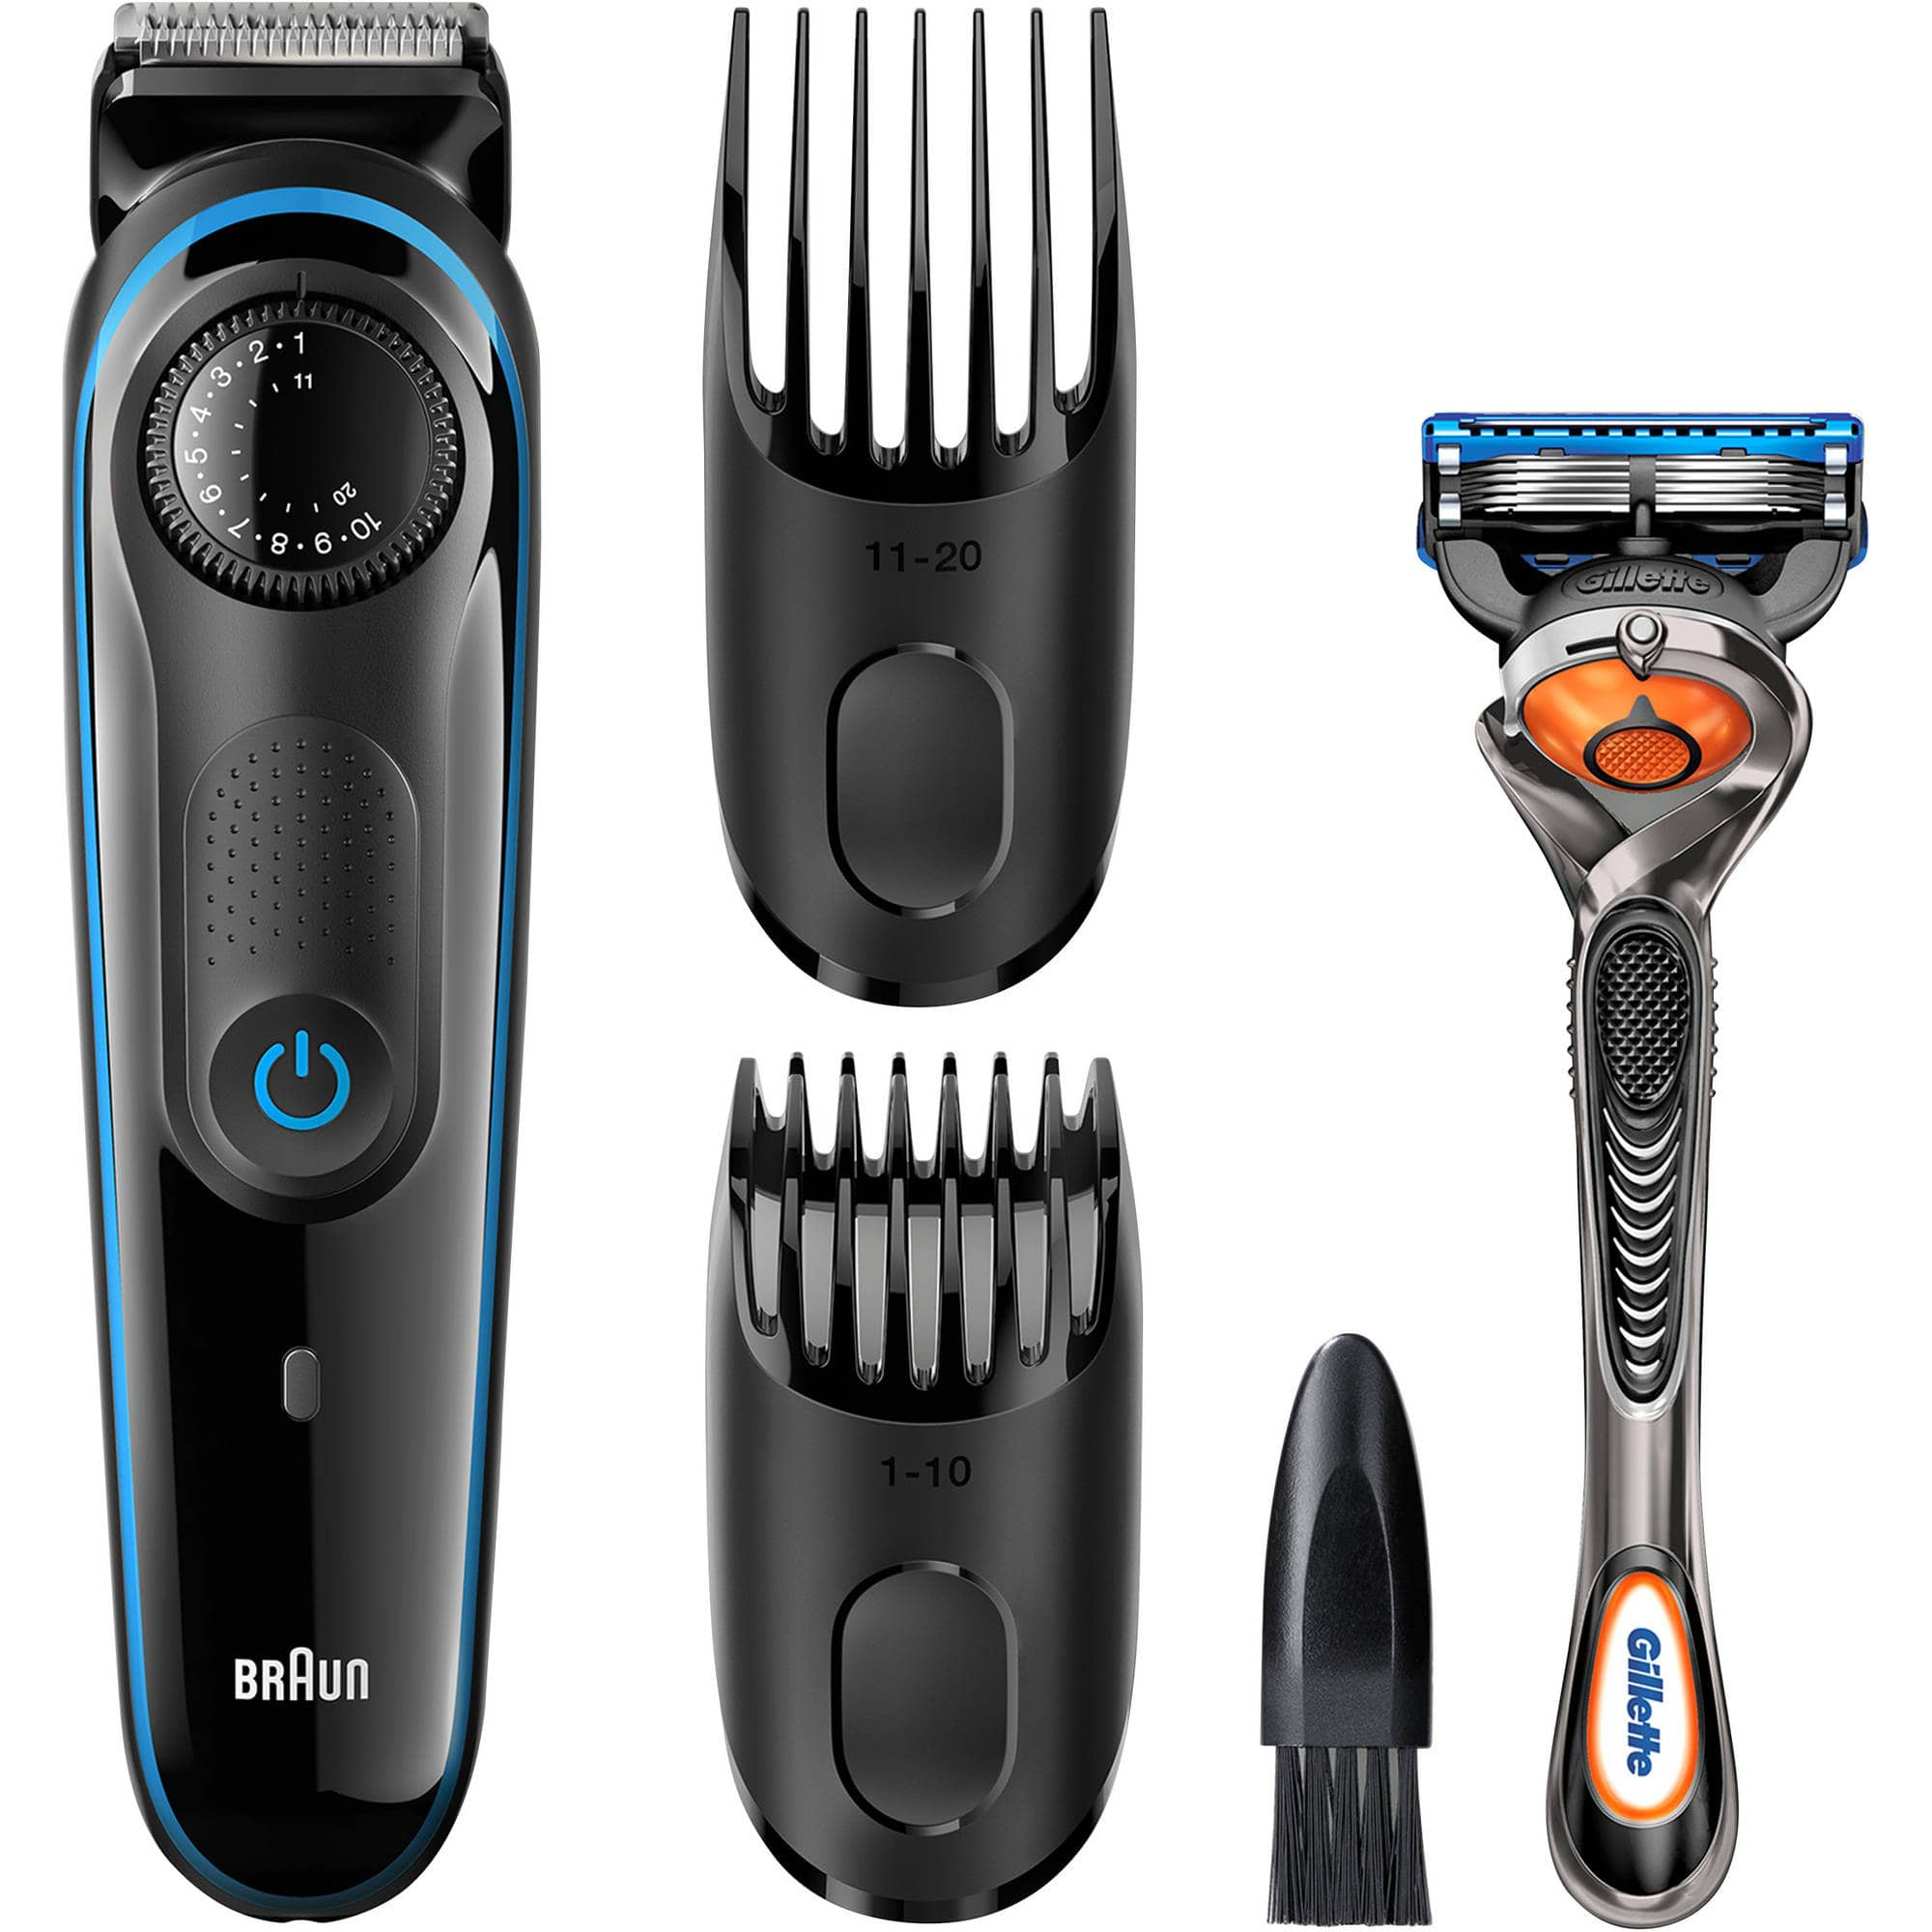 braun bt3040 men s hair beard trimmer multi grooming kit after 5 rebate free store. Black Bedroom Furniture Sets. Home Design Ideas